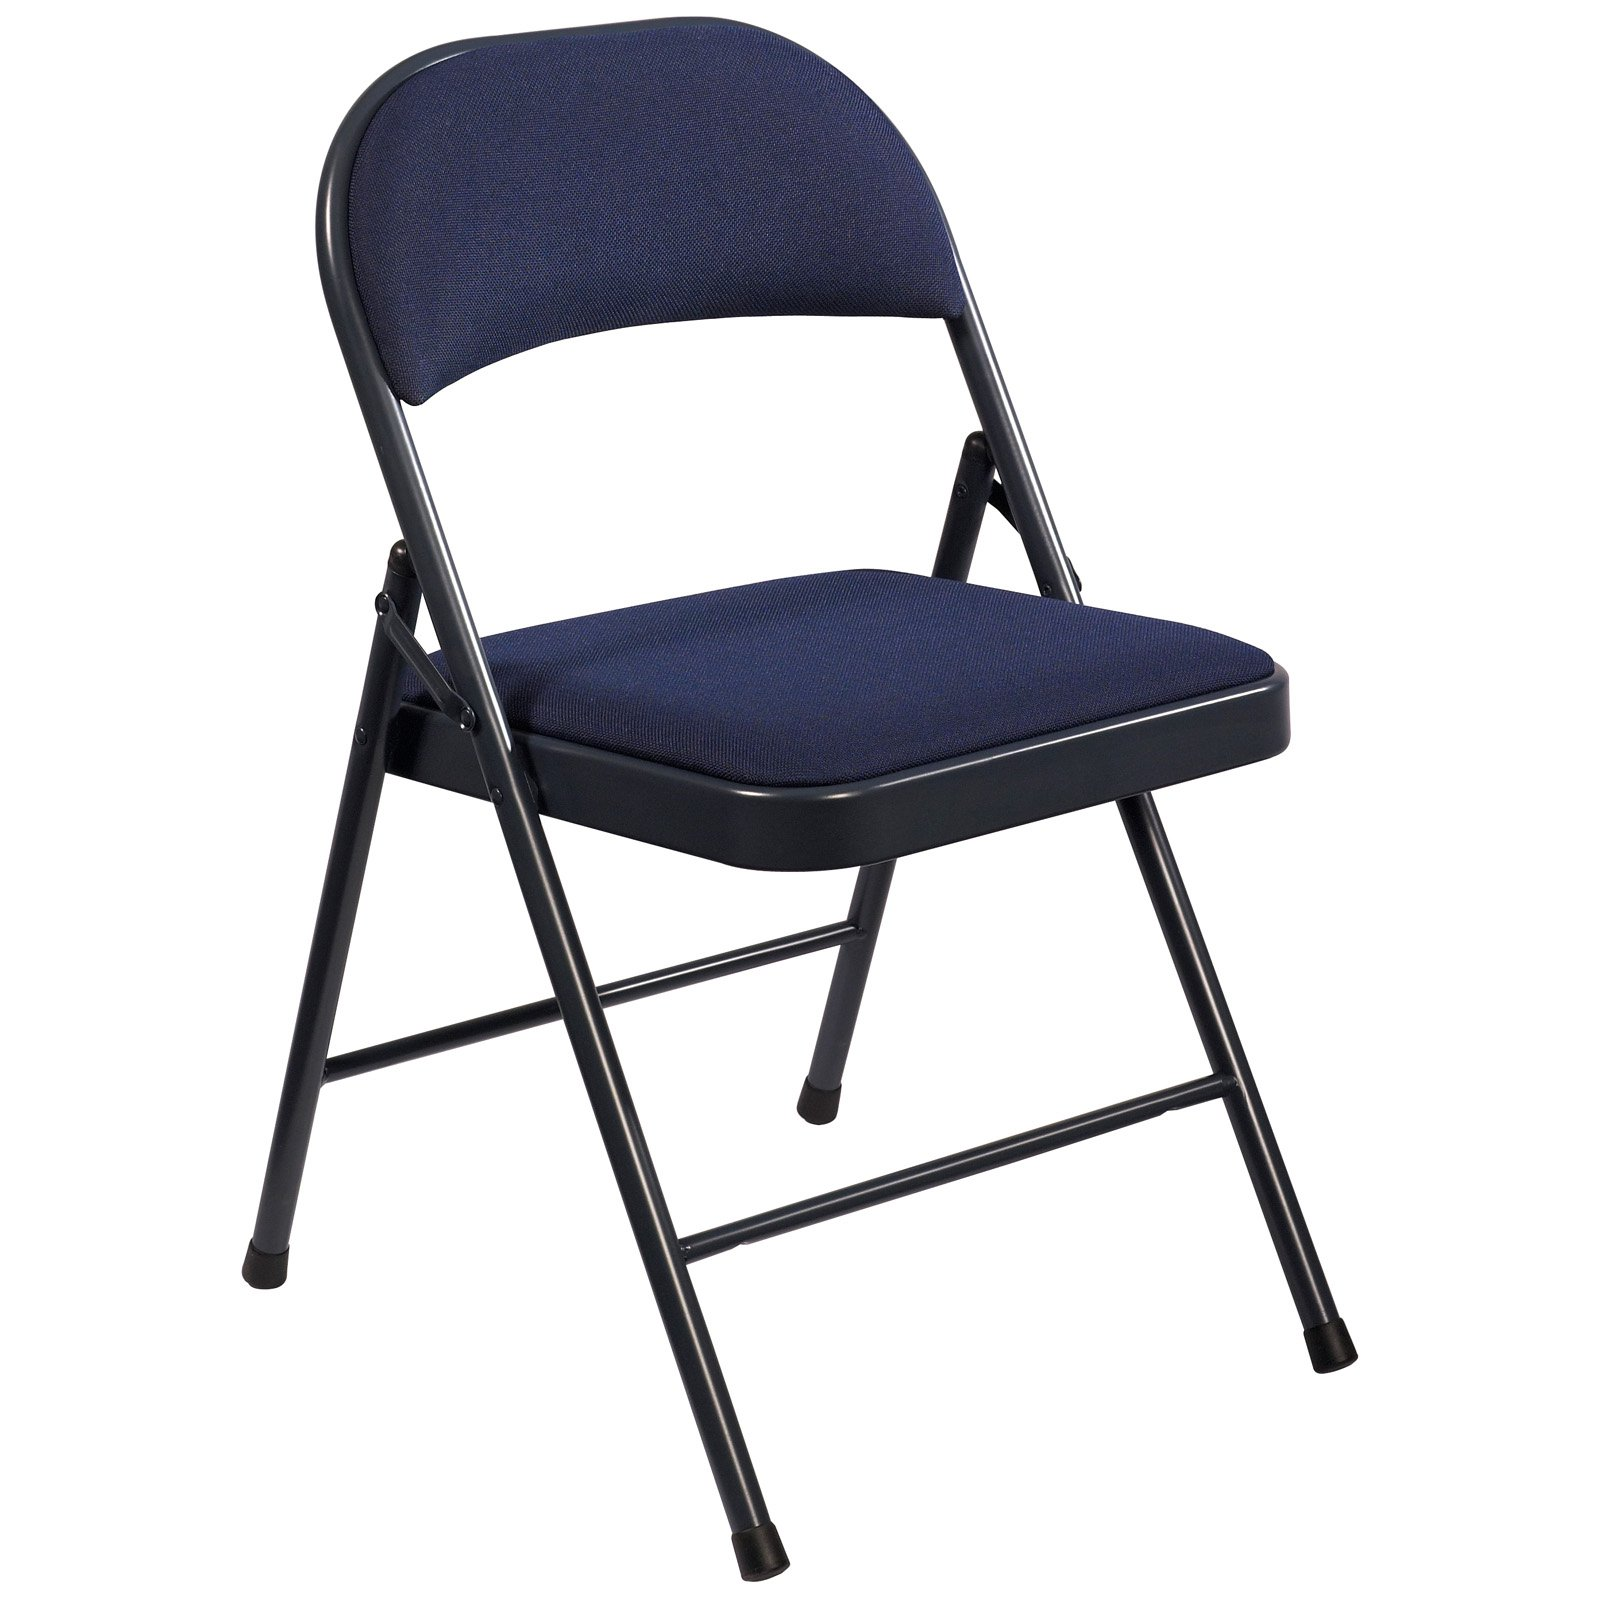 National Public Seating mercialine Padded Fabric Folding Chairs